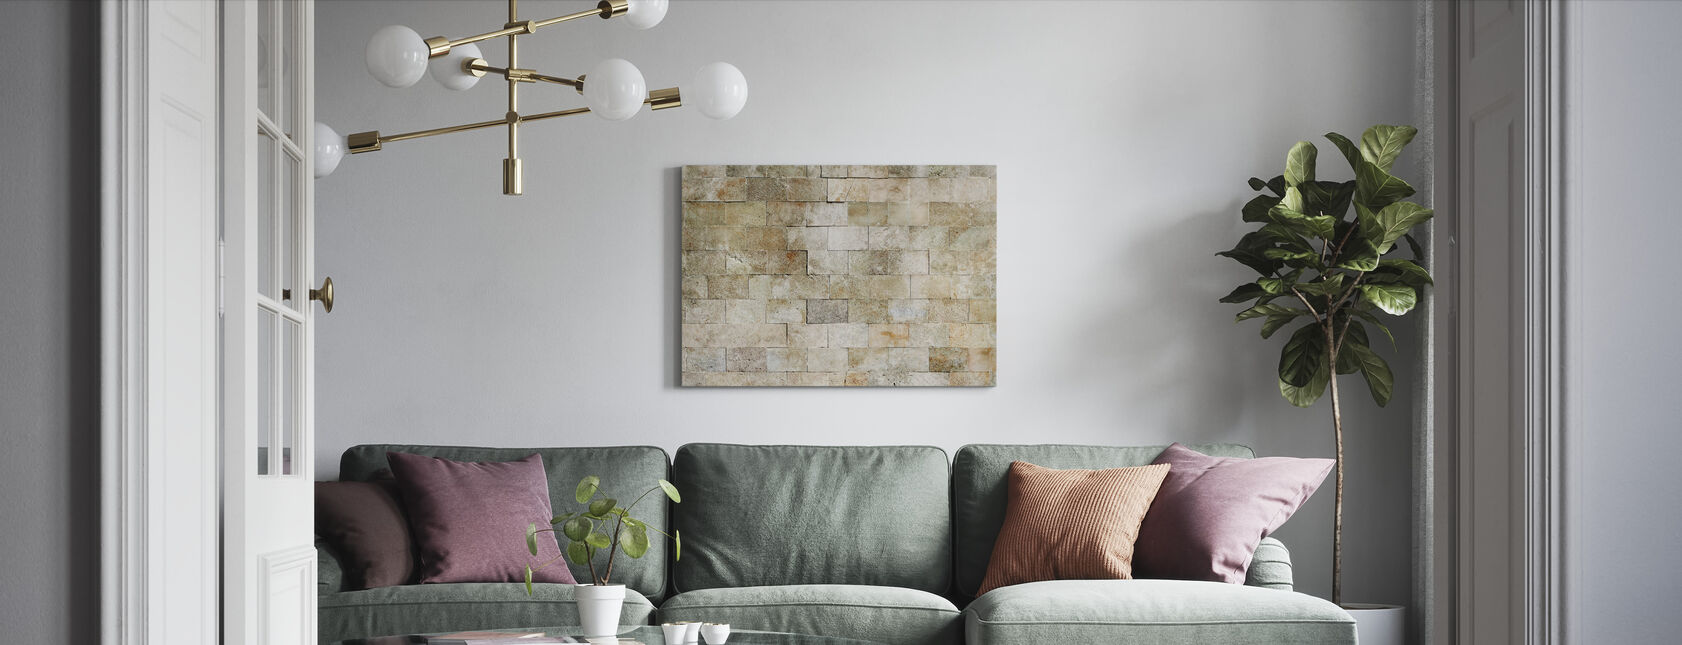 Tiled Stone Wall - Canvas print - Living Room